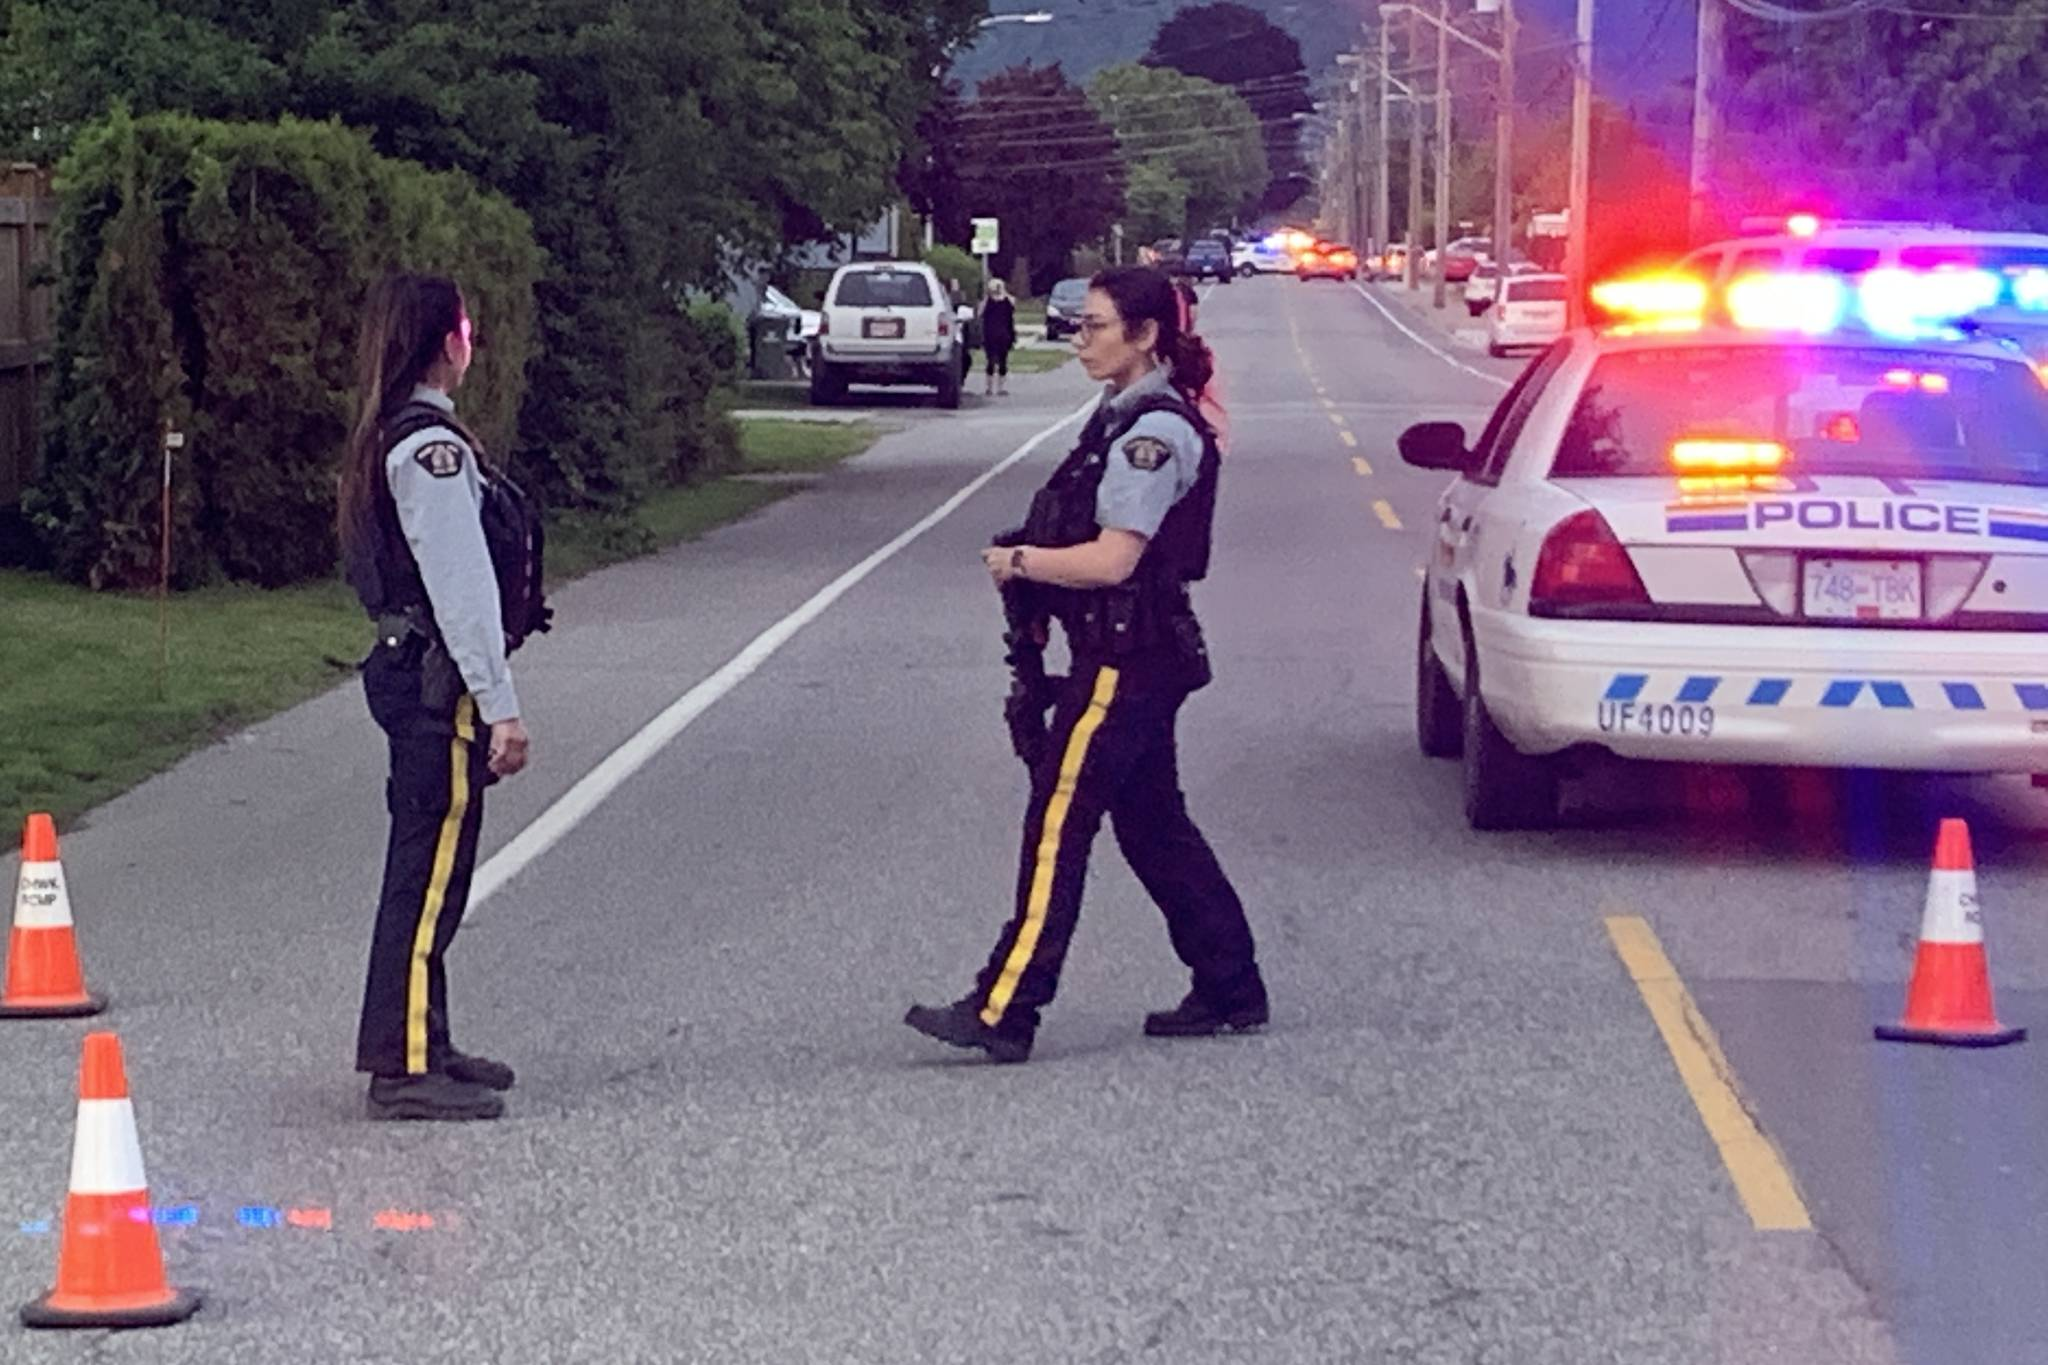 Chilliwack RCMP officers on the scene of a police incident involving shots fired, according to witnesses, near Christina Drive in Chilliwack on May 23, 2020. (Paul Henderson/ The Progress)